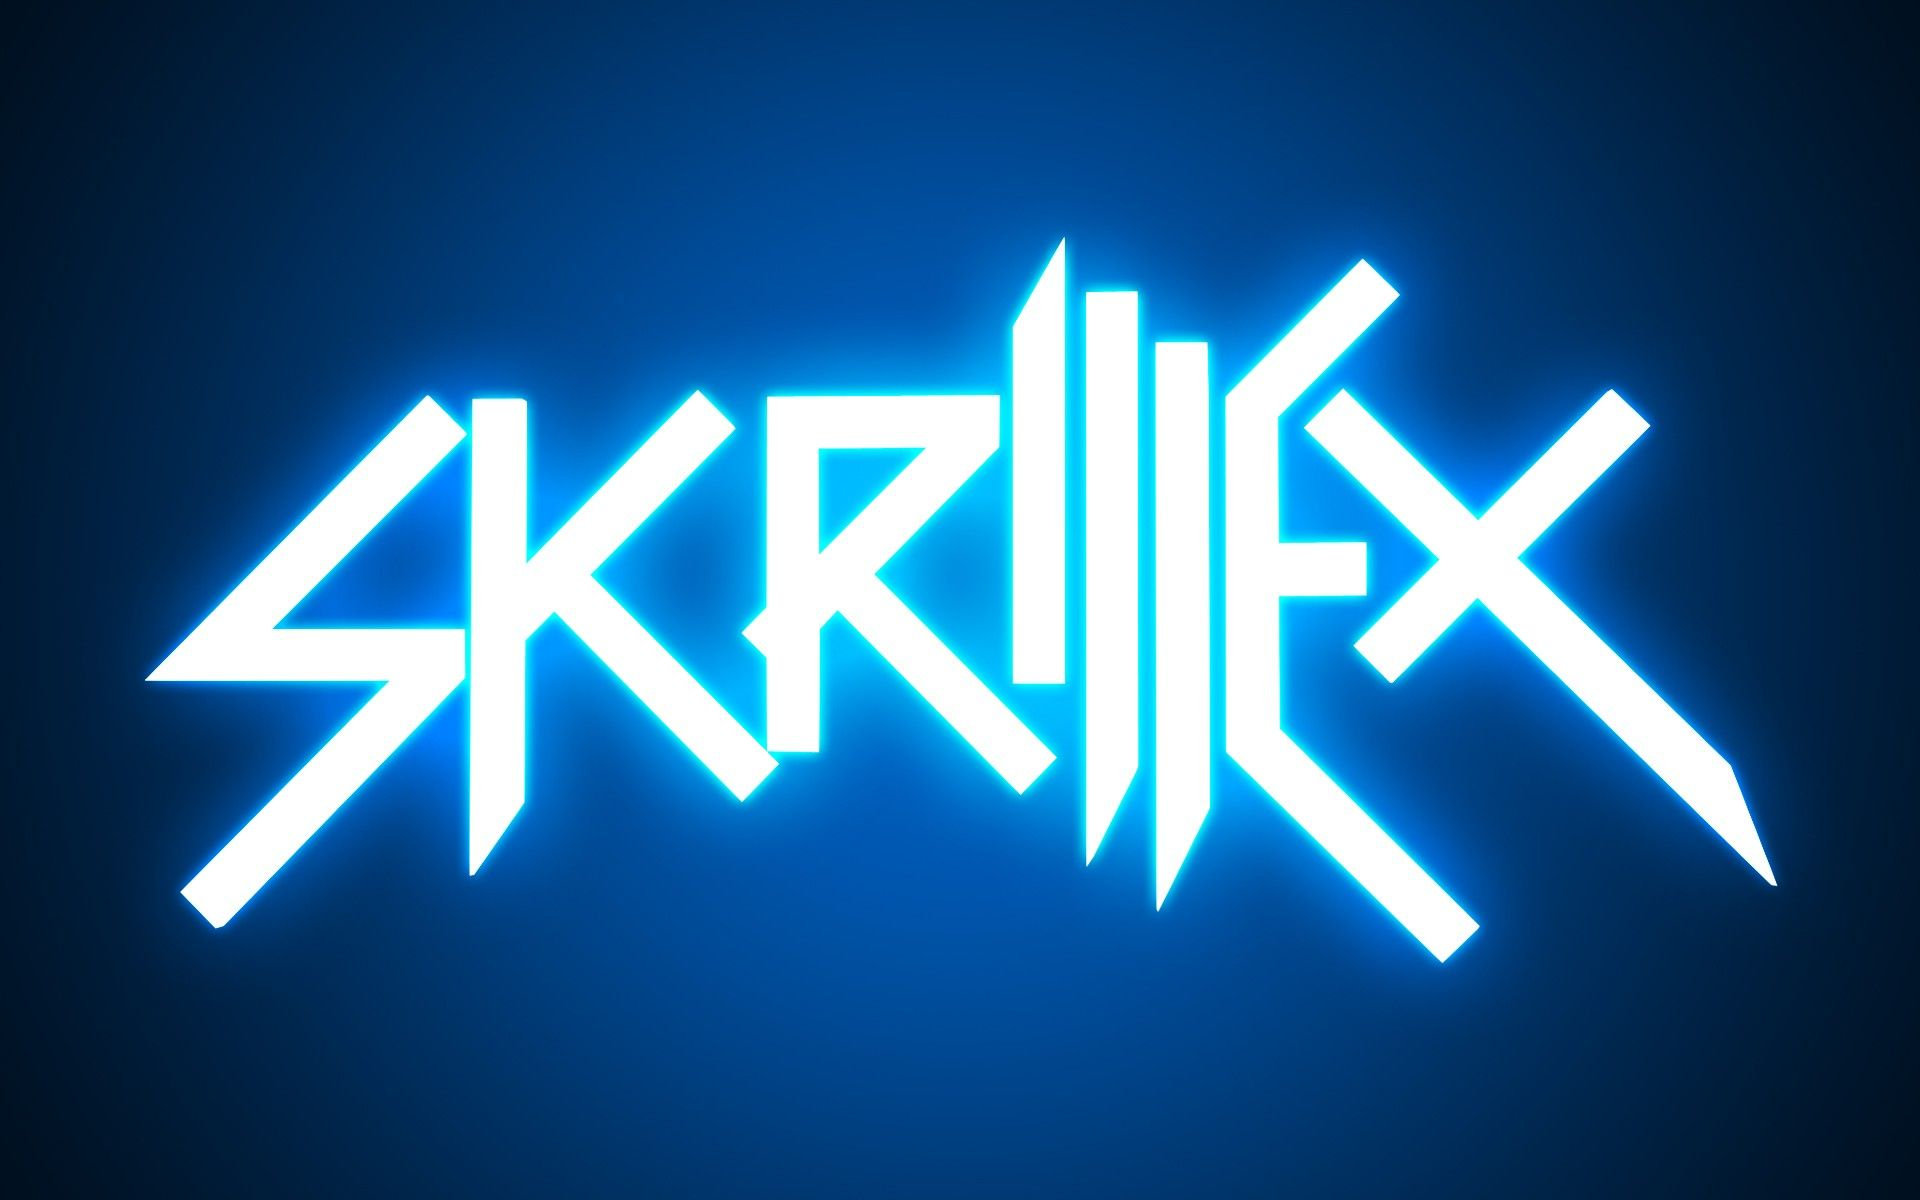 Skrillex logo lights free download music hd desktop - Music hd wallpapers free download ...